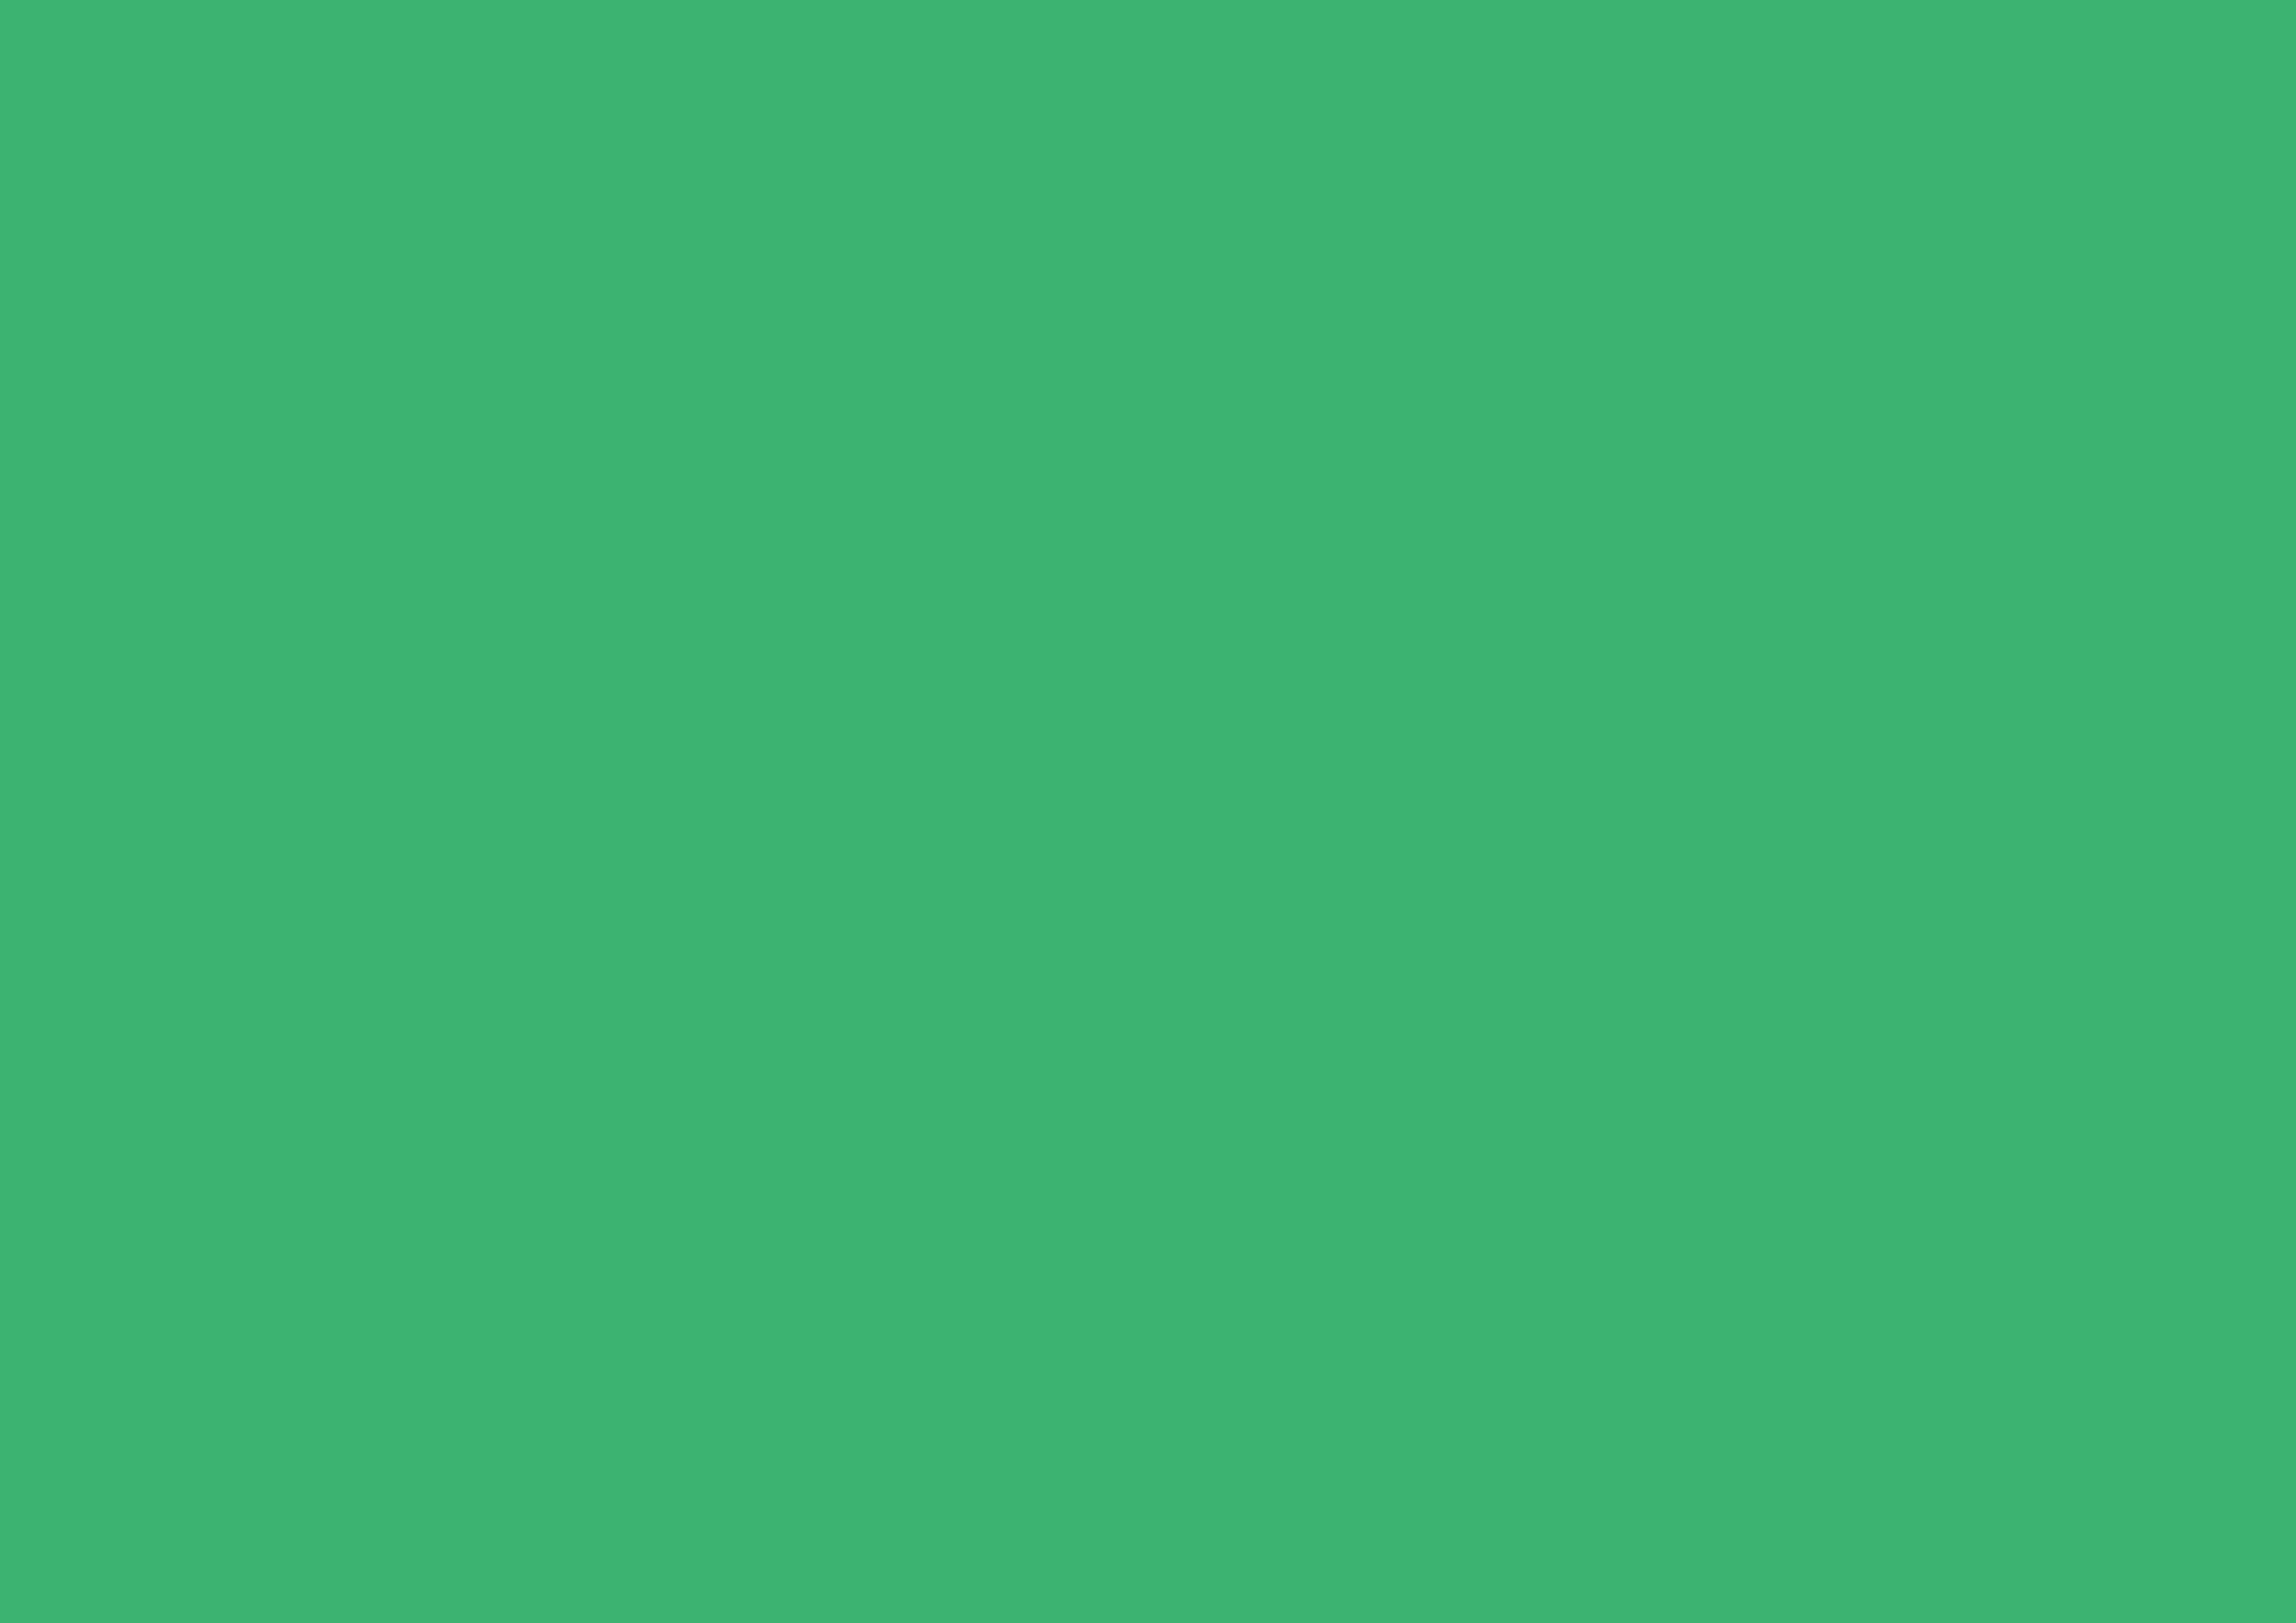 3508x2480 Medium Sea Green Solid Color Background